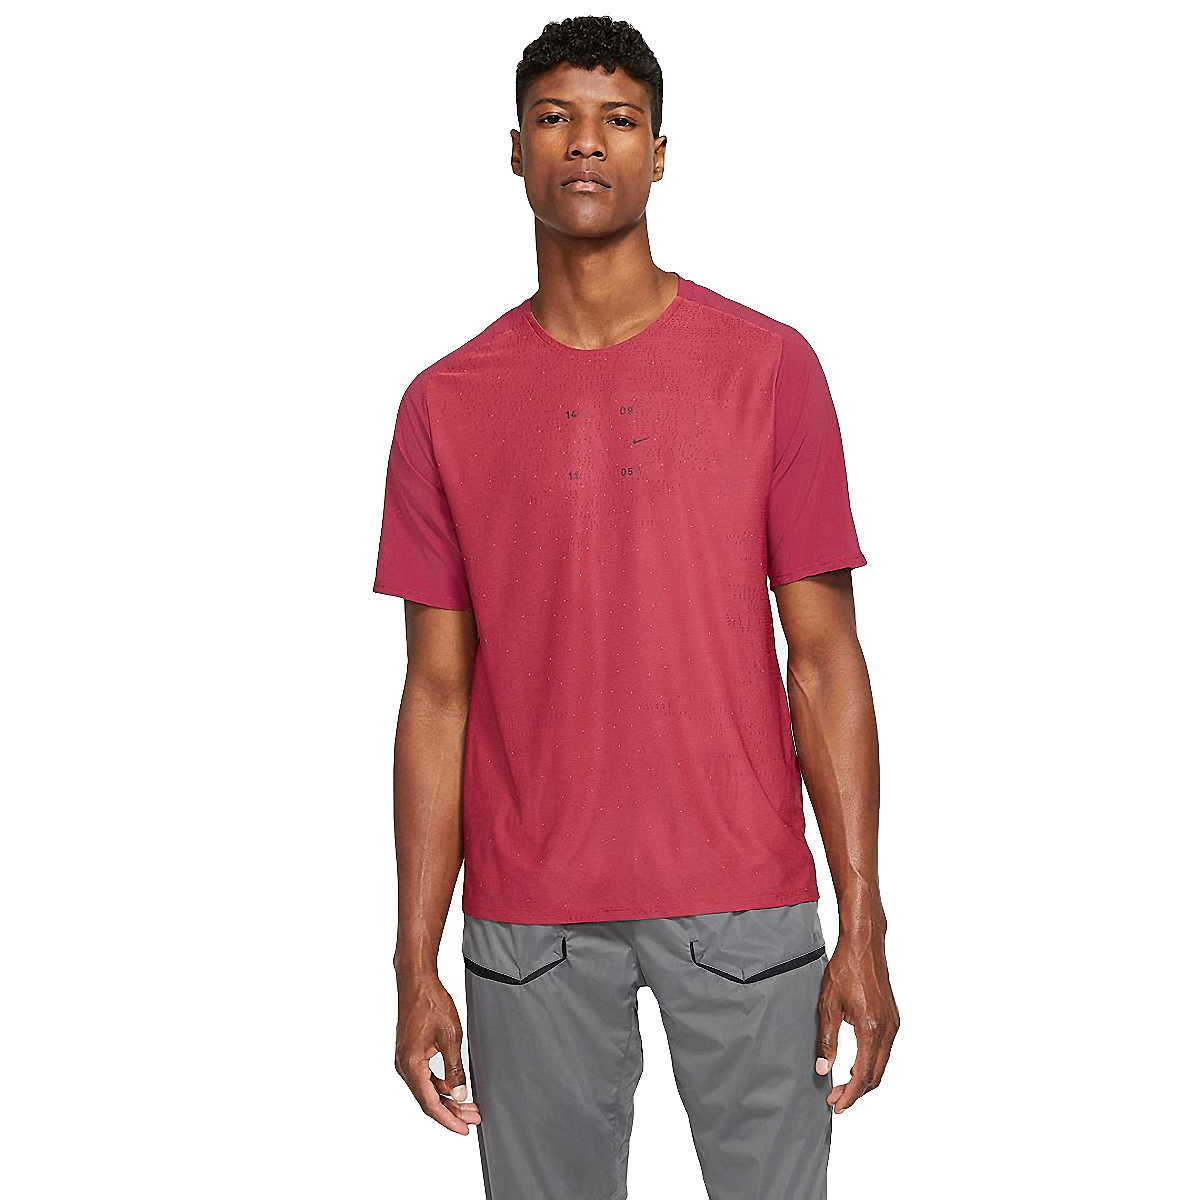 Men's Nike Tech Pack Top Hybrid Short Sleeve  - Color: Red - Size: S, Red, large, image 1